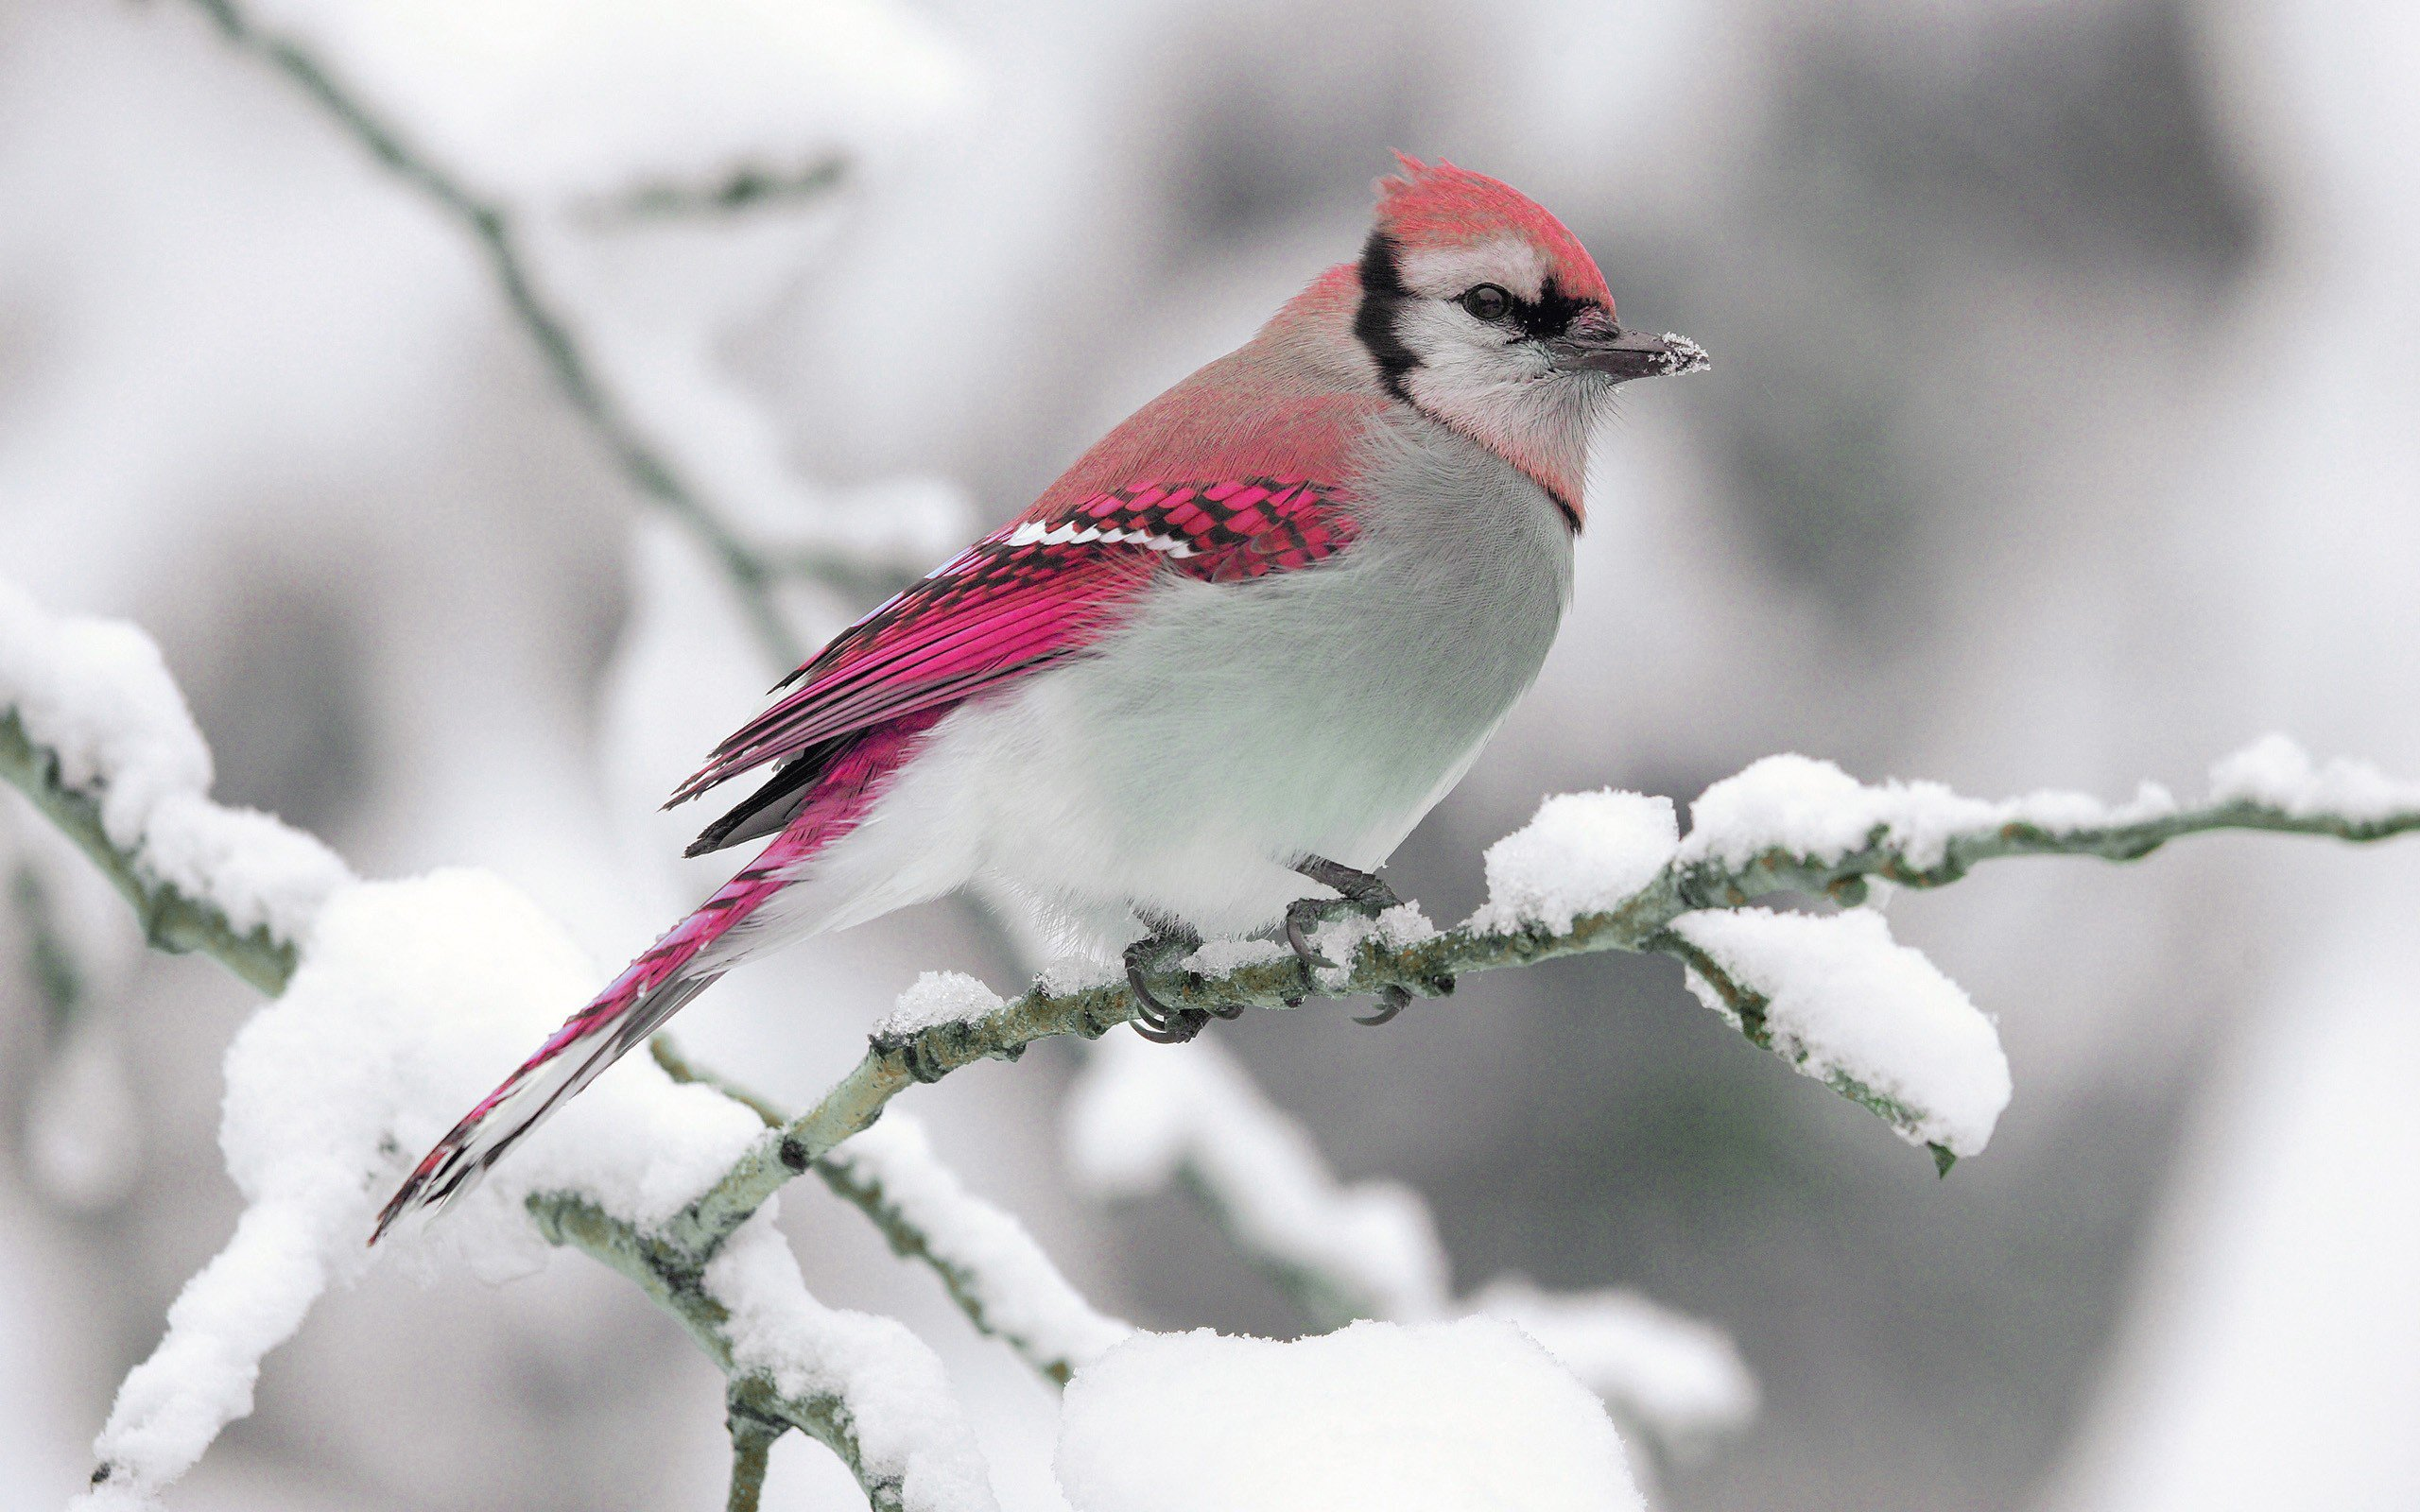 Nature winter bird snow branch wallpaper 2560x1600 309884 2560x1600